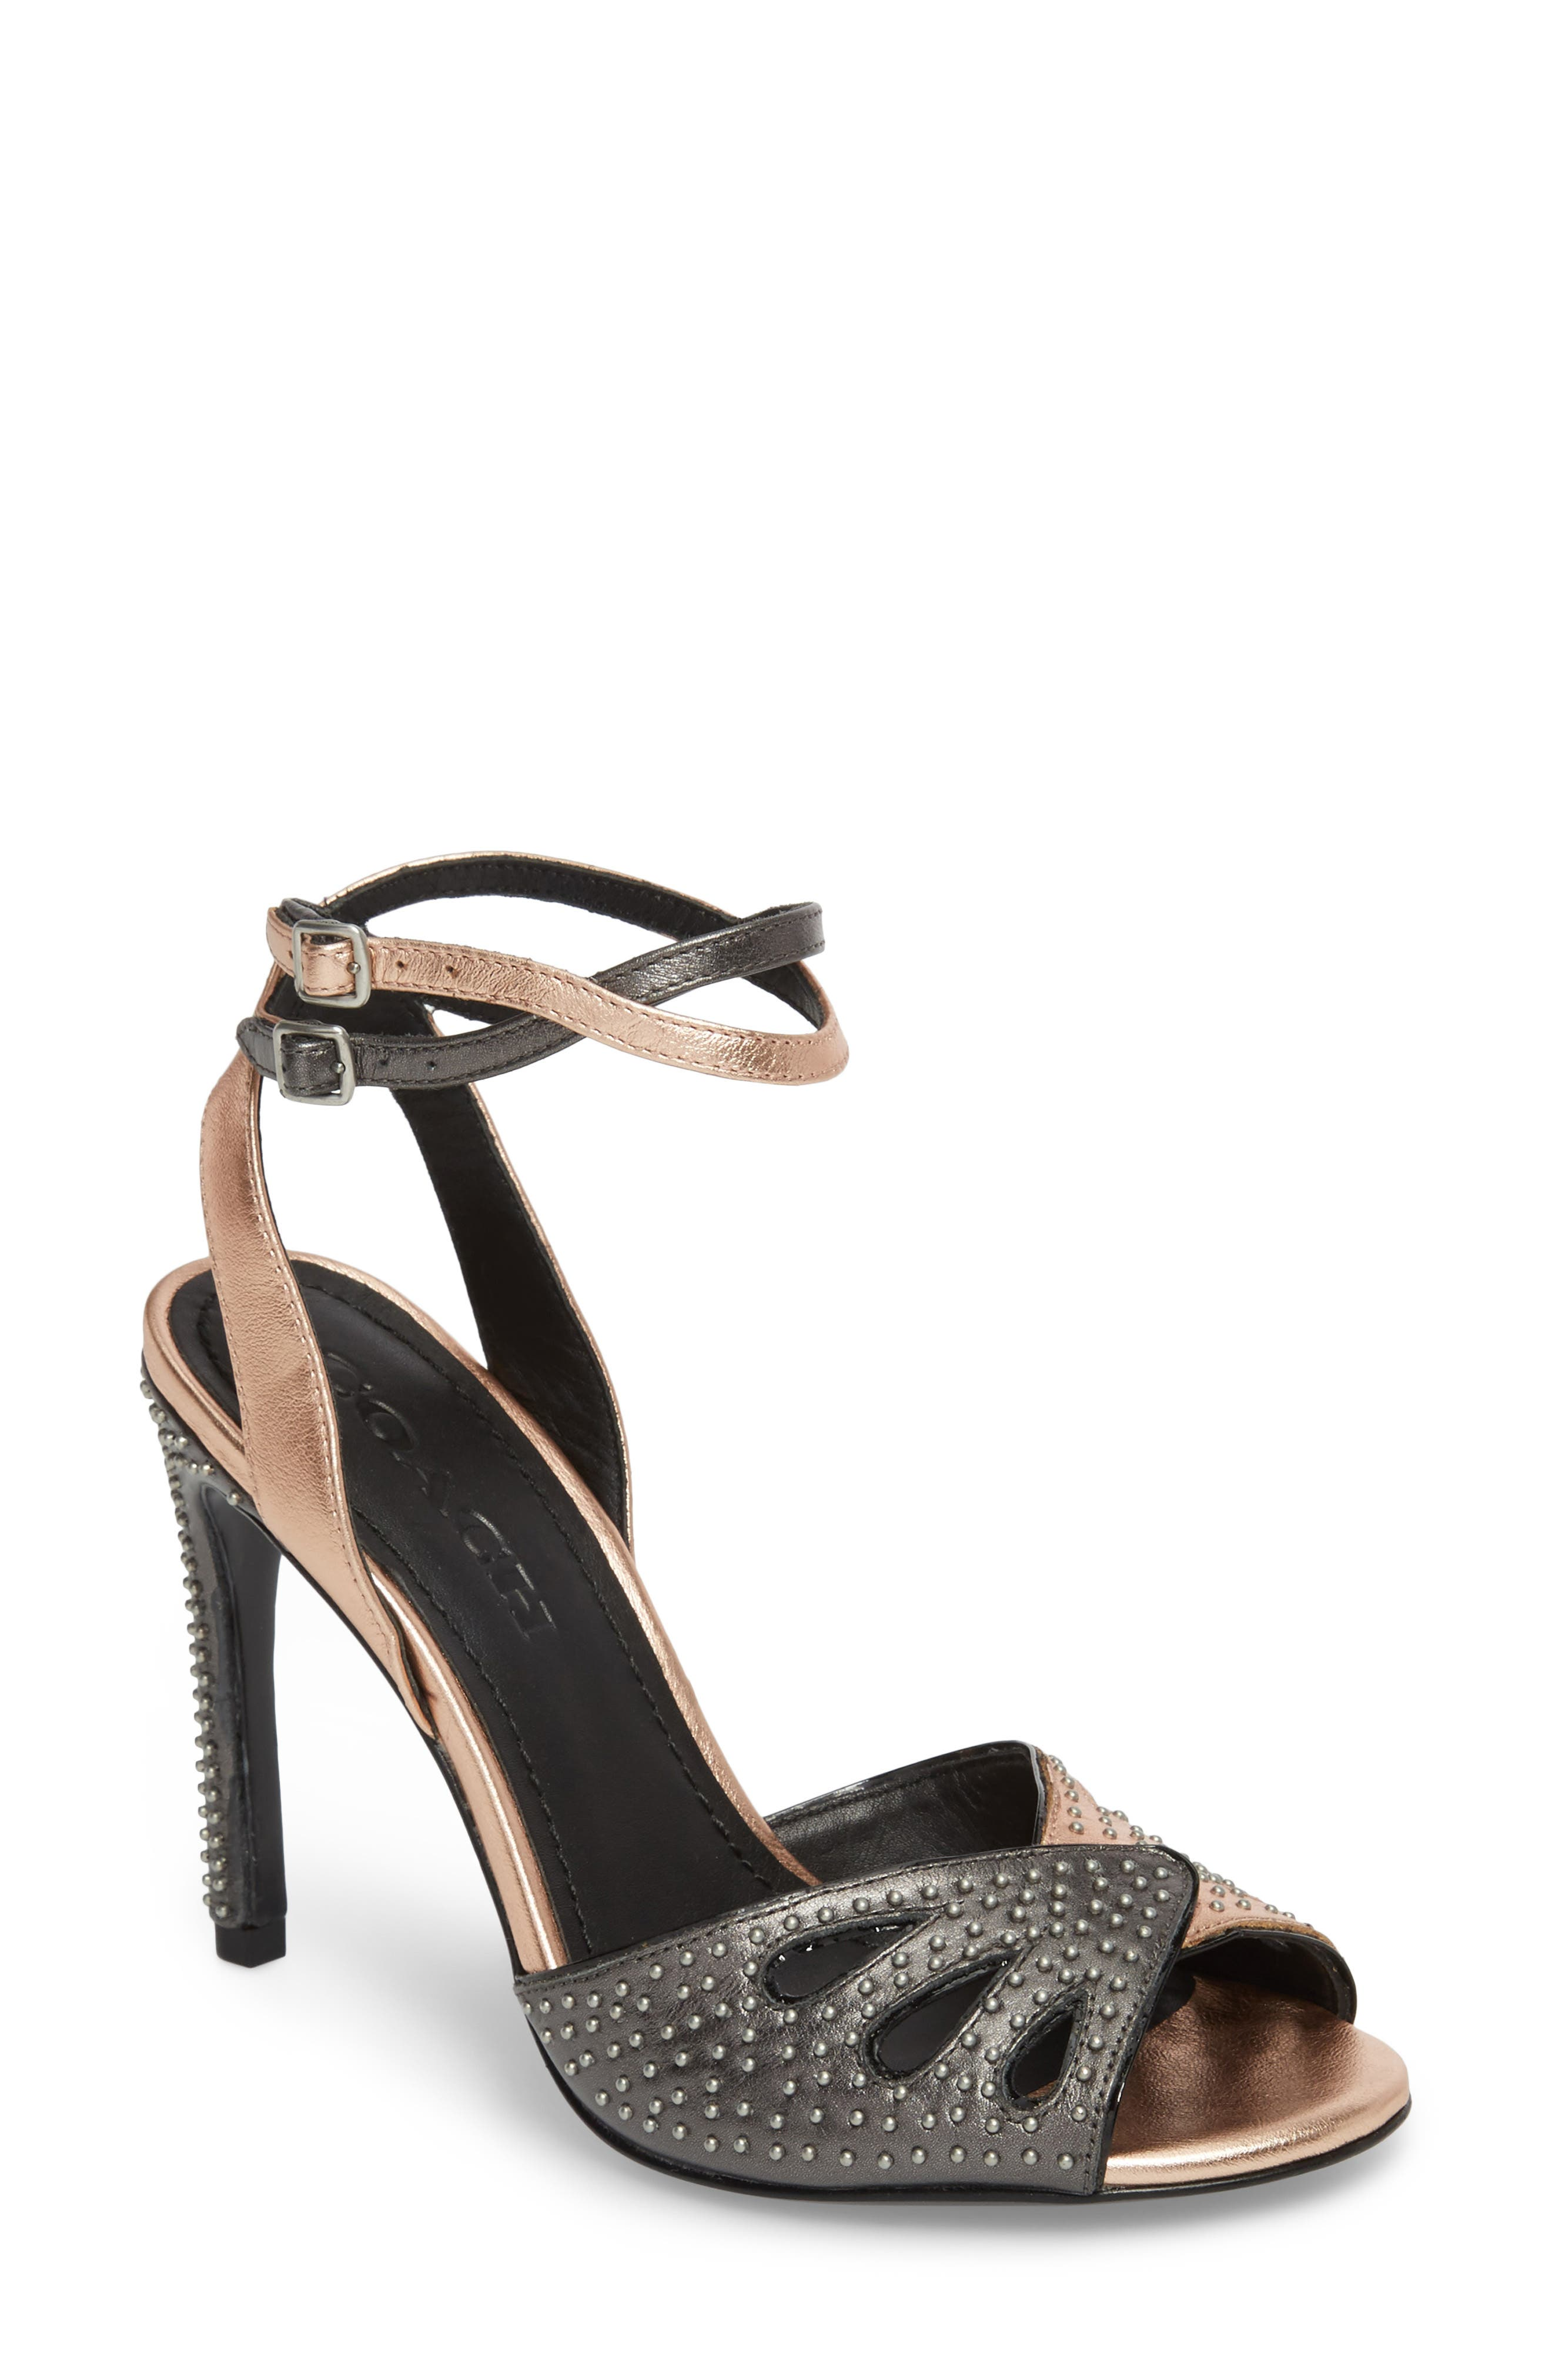 Prairie Rivet Sandal,                         Main,                         color, Rose Gold/ Gunmetal